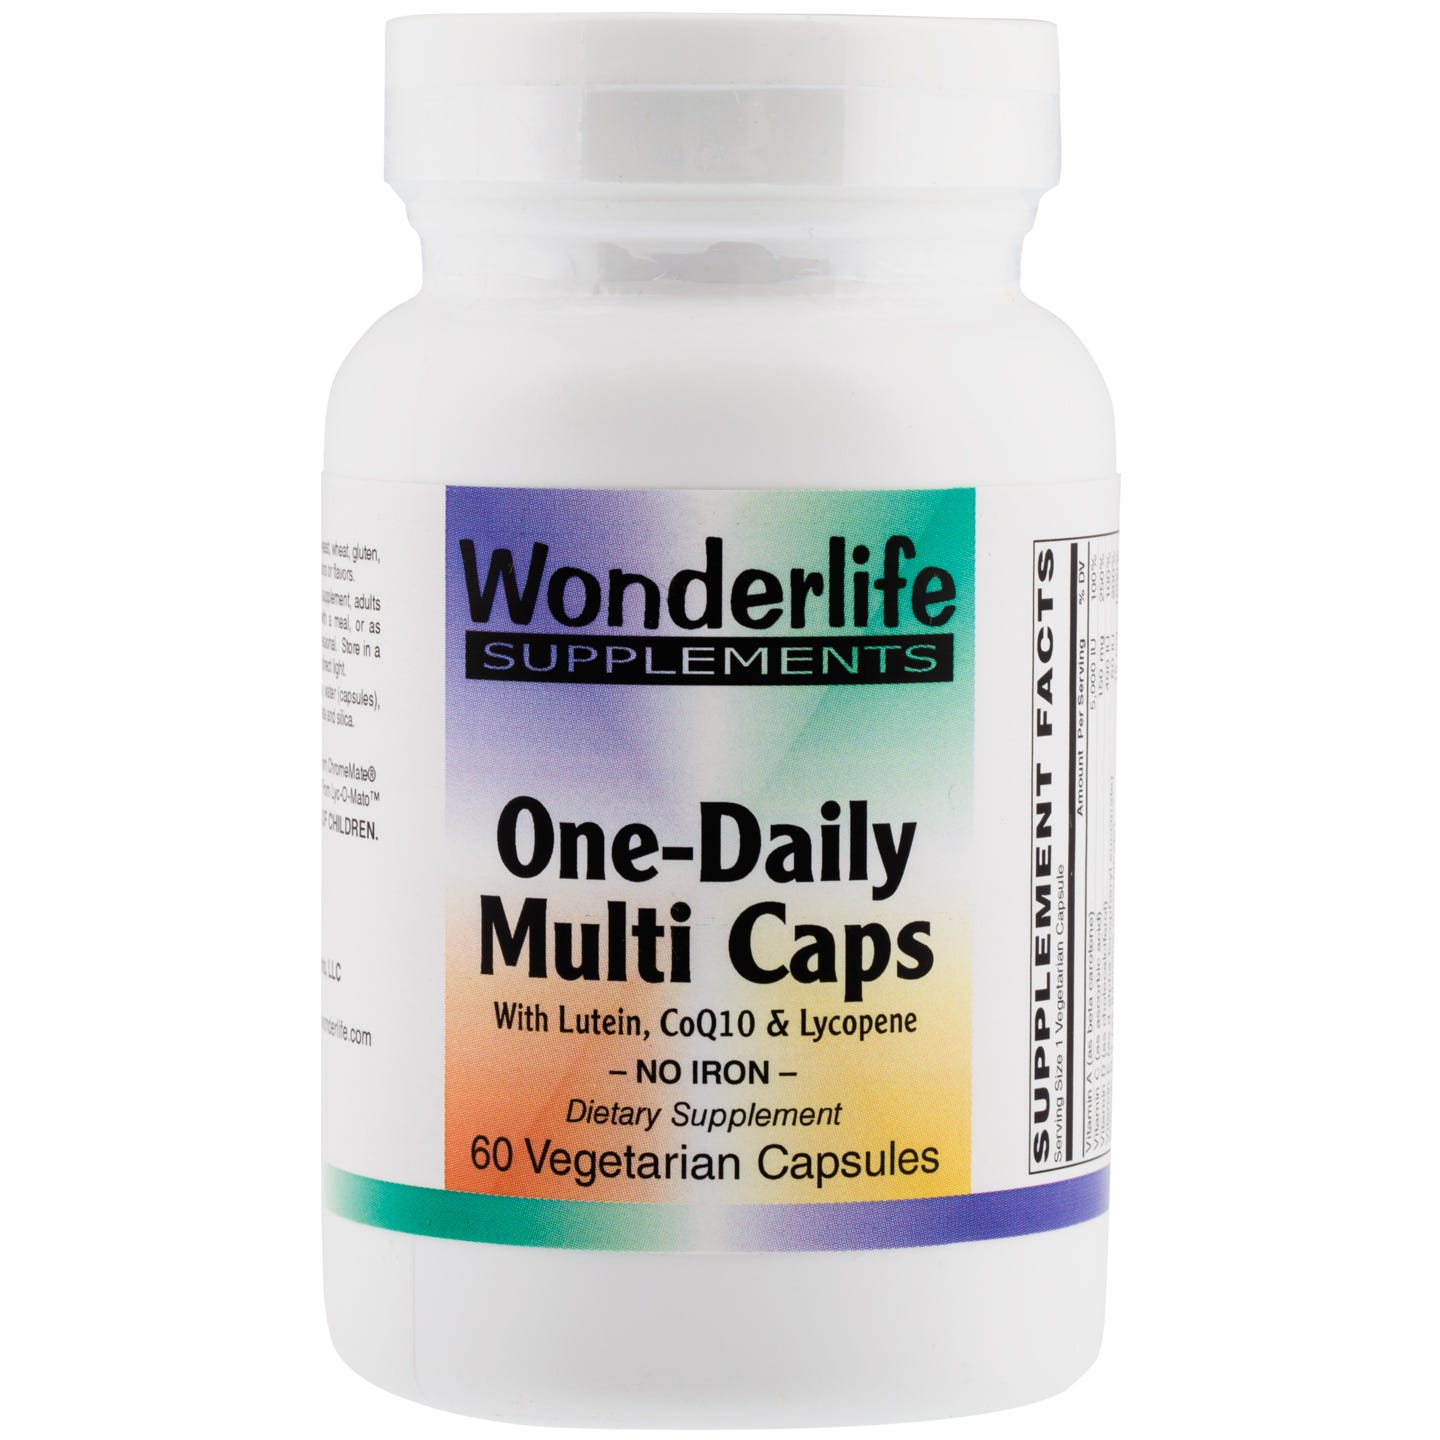 One-Daily Multi Caps, No Iron (60 Vcaps), Wonderlife - Rapid Diet Weight Loss Products Shop